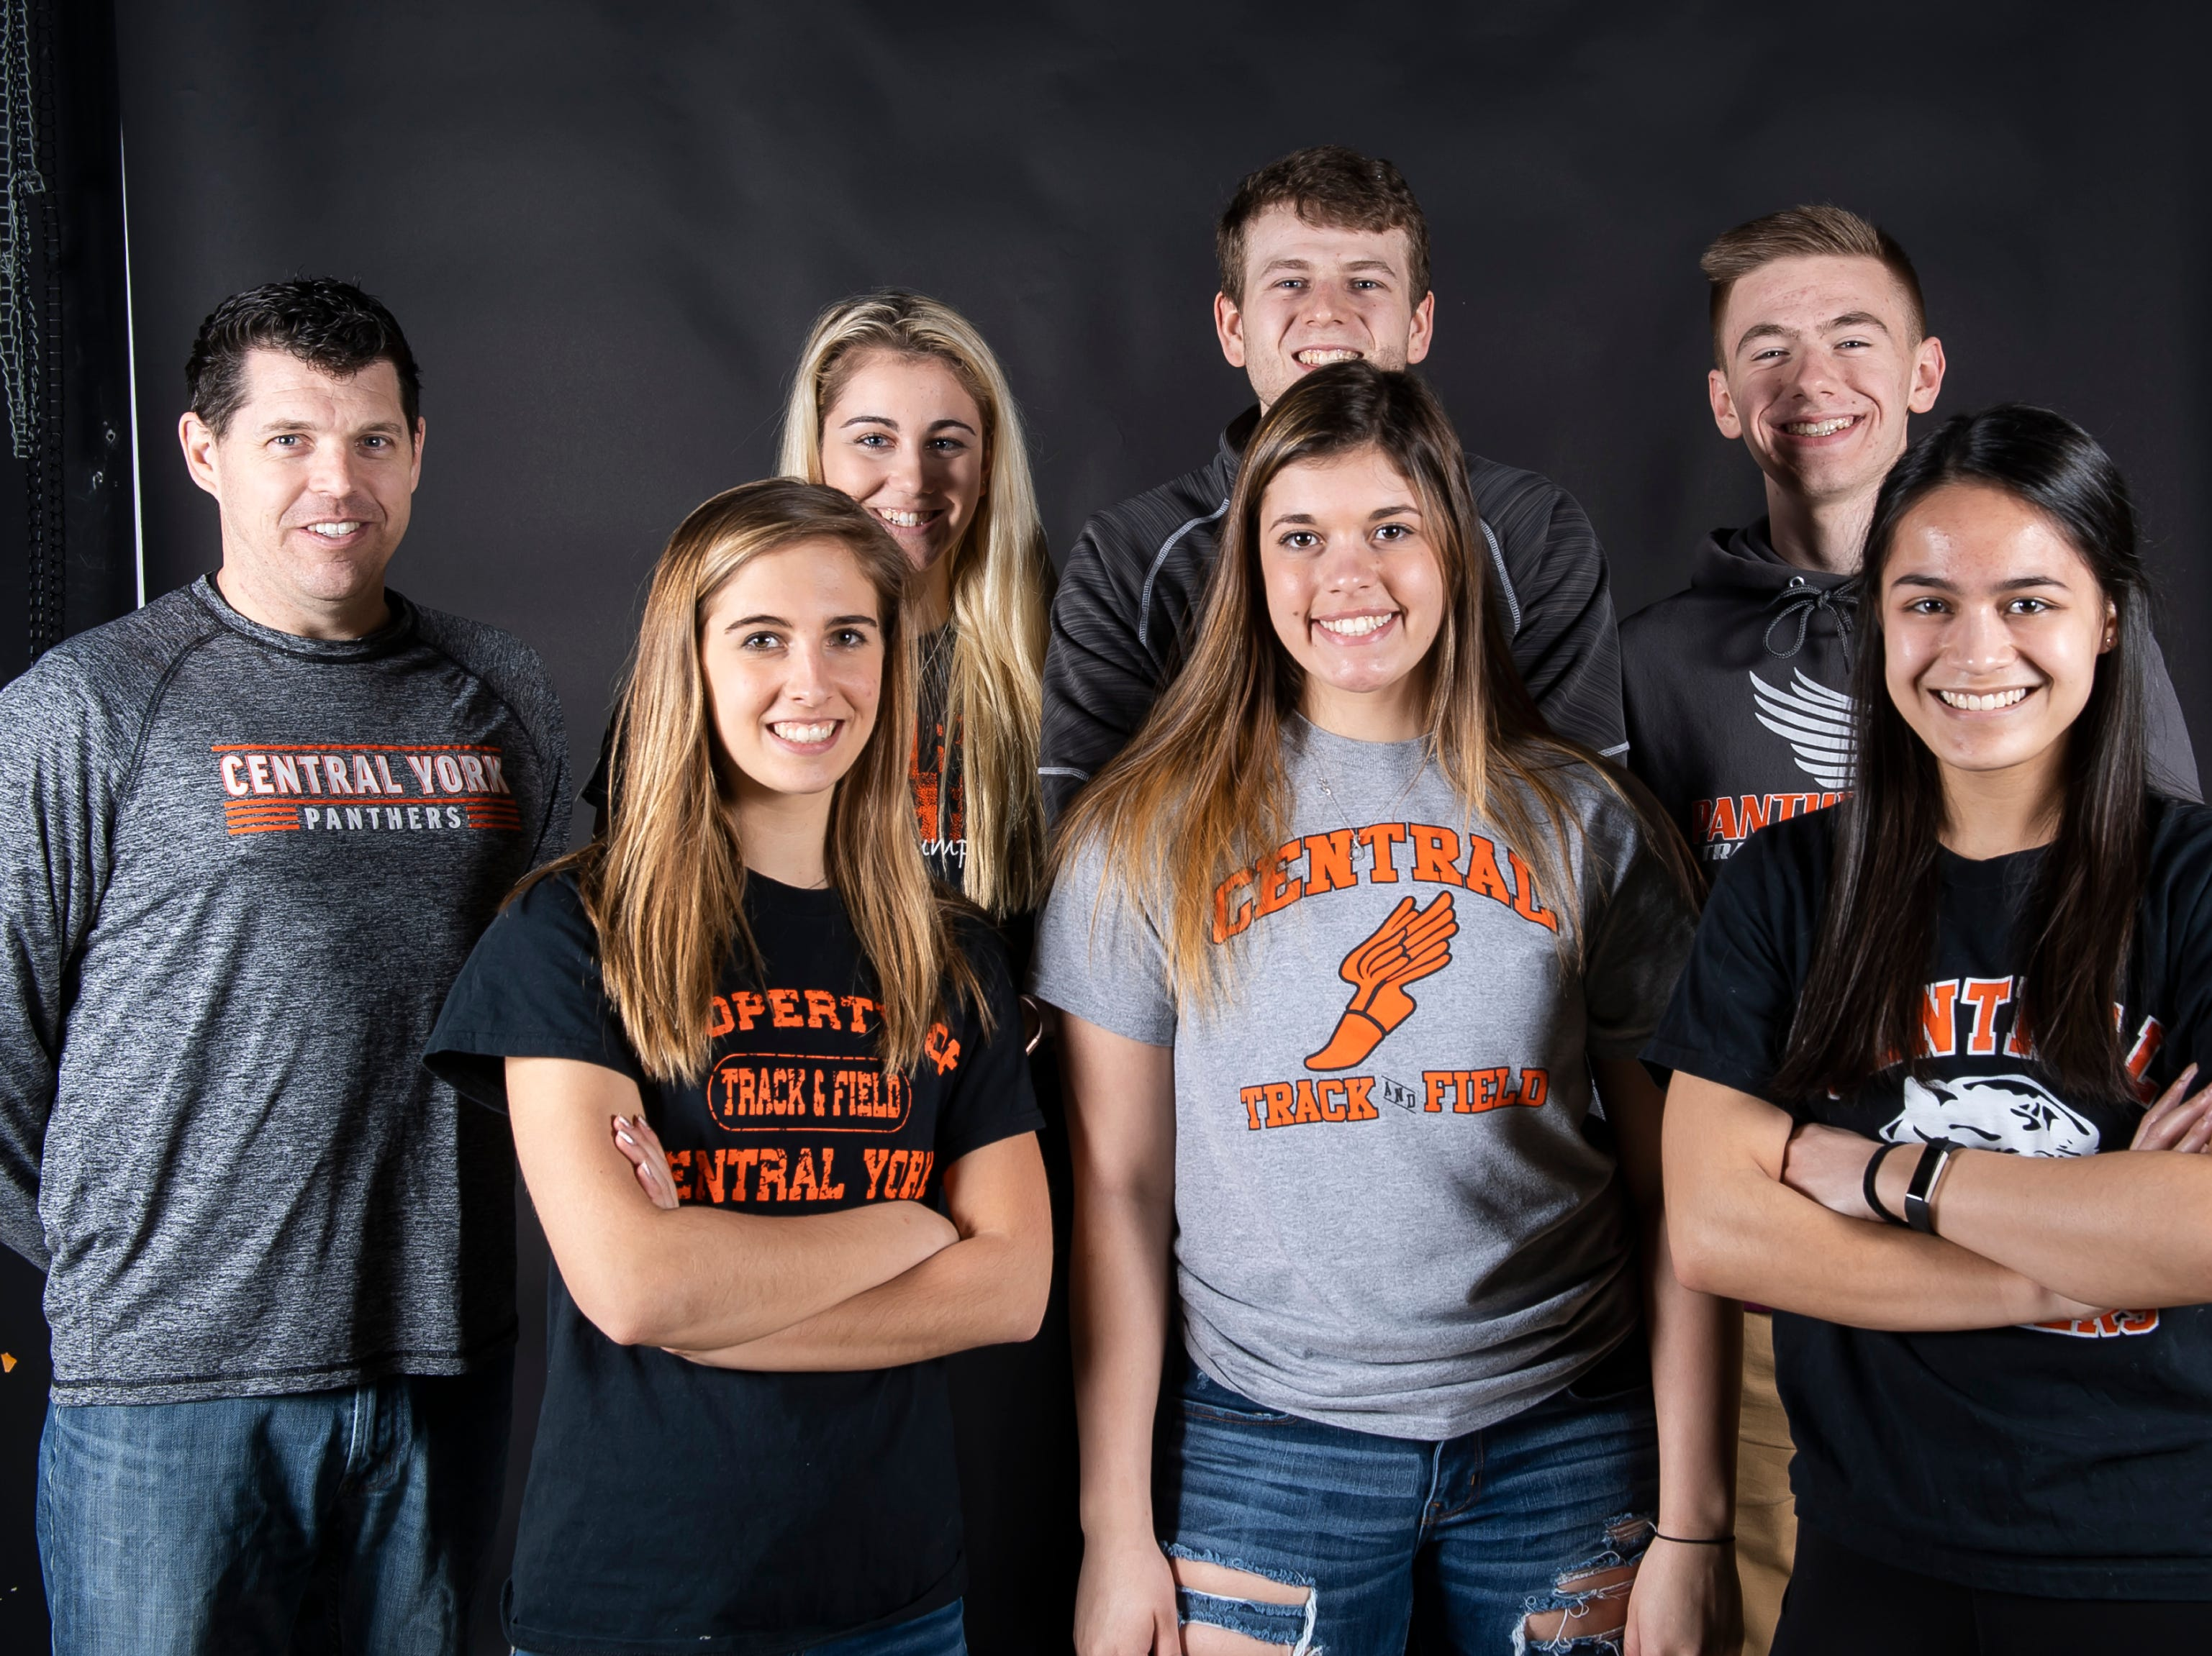 (From back left) Central York track and field coach Christopher Detwiller, Sierra Crane, Bryce Bender, Connor Perone, Kendall Smith, Micahela Smith and Madison Scapano pose in the GameTimePA photo booth during spring sports media day in York Sunday, March 10, 2019.